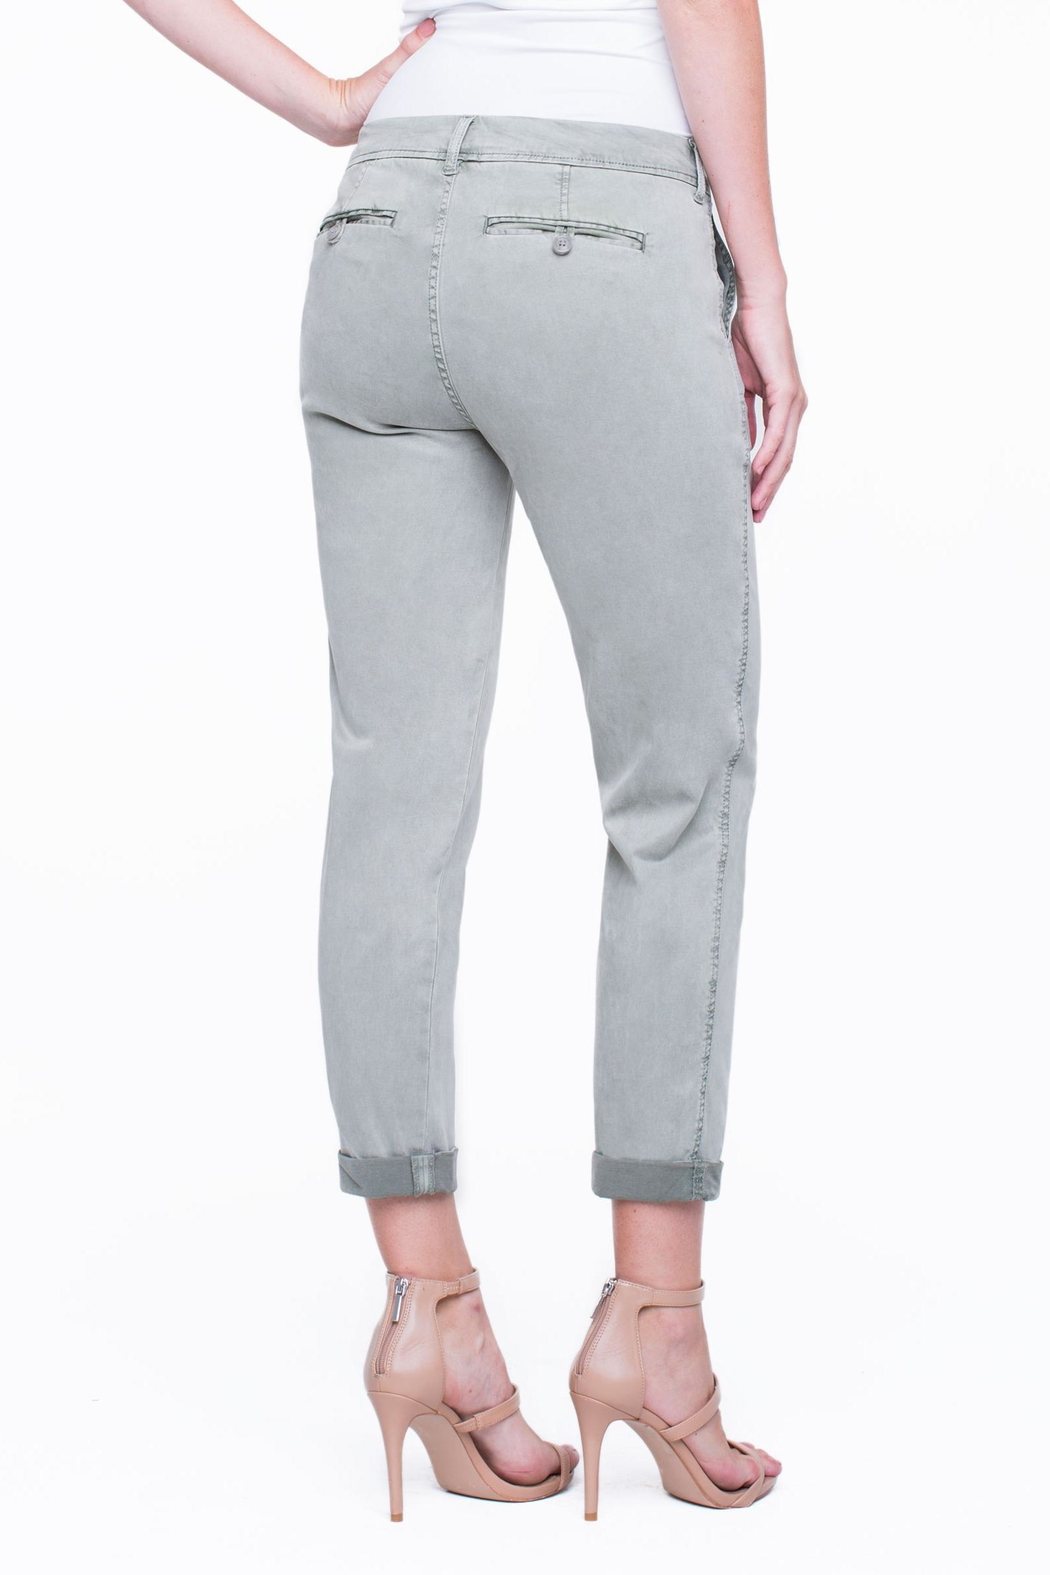 Liverpool Jeans Company Buddy Trouser - Side Cropped Image